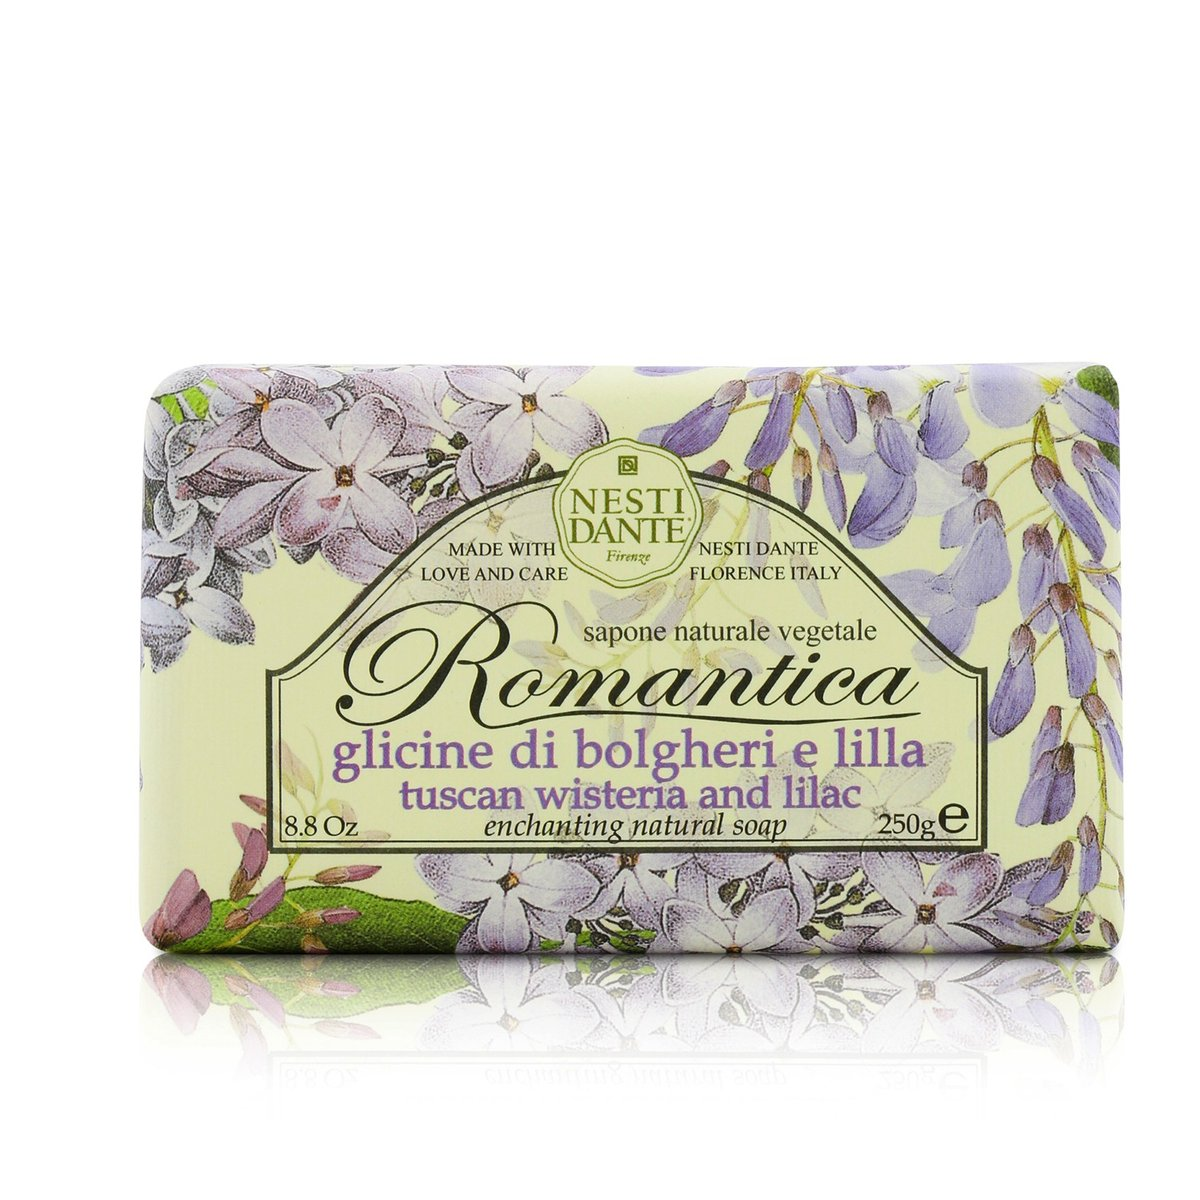 Romantica Enchanting Natural Soap - Tuscan Wisteria & Lilac  -[Parallel Import Product]